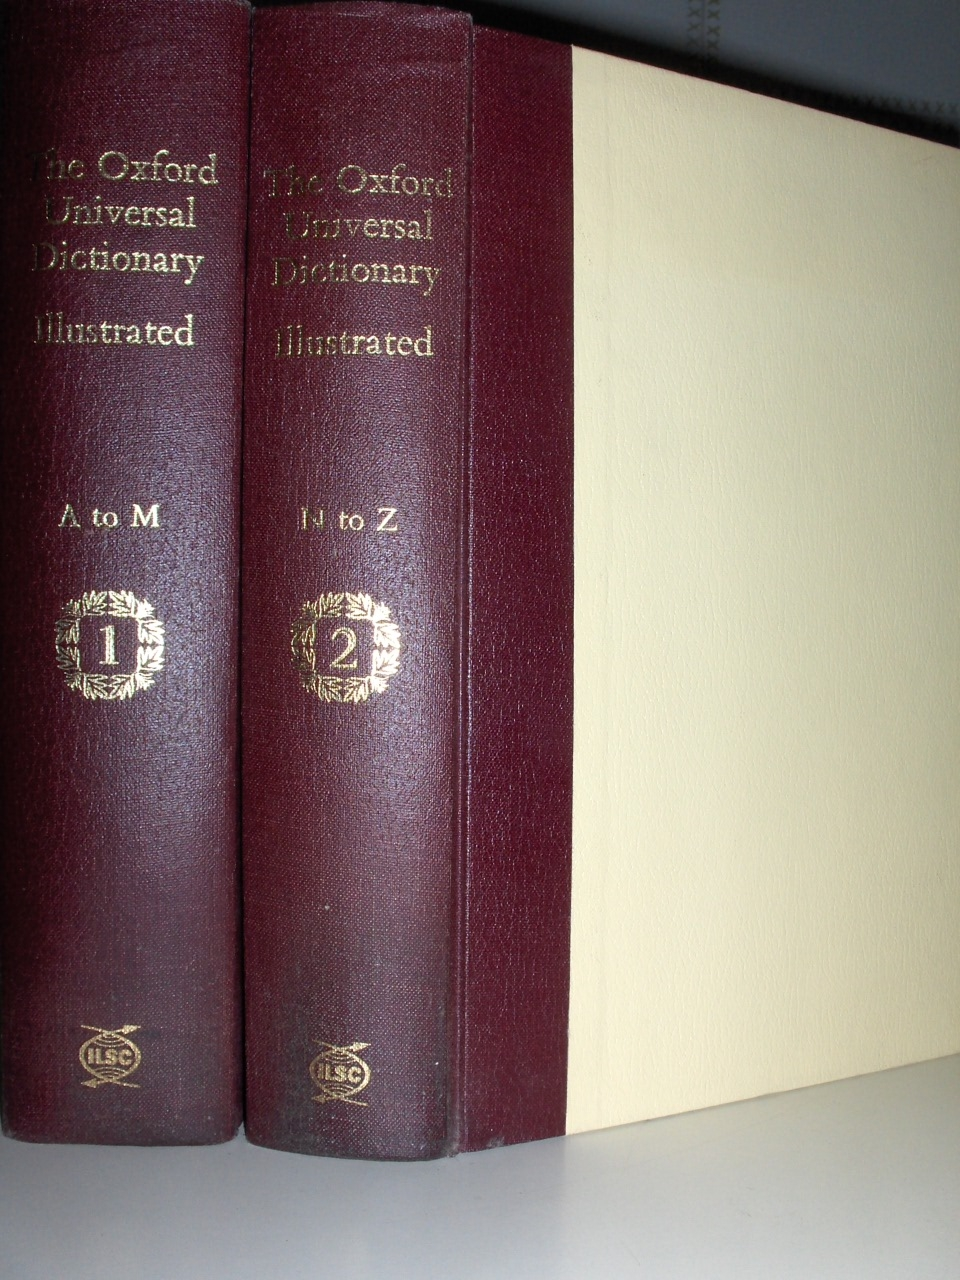 The Oxford Universal Dictionary Illustrated